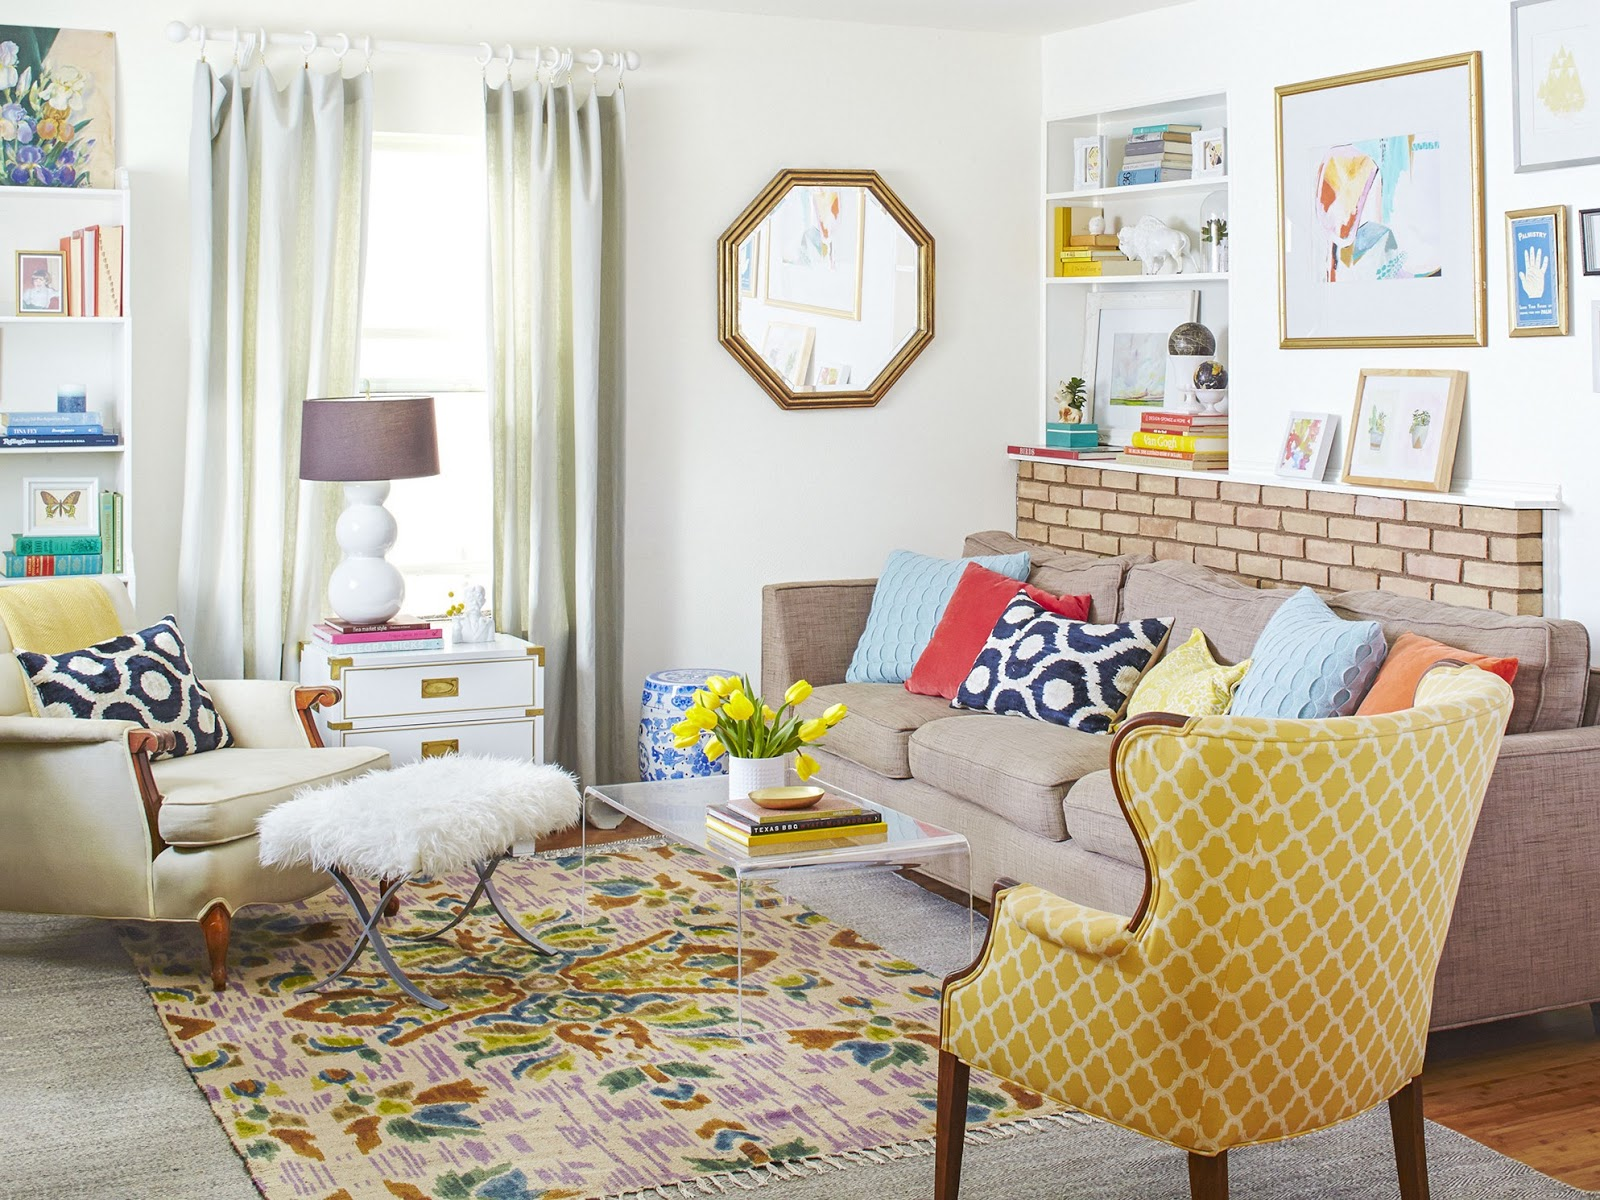 Beautify the room with Eclectic Style Home Furniture   Art Home ...